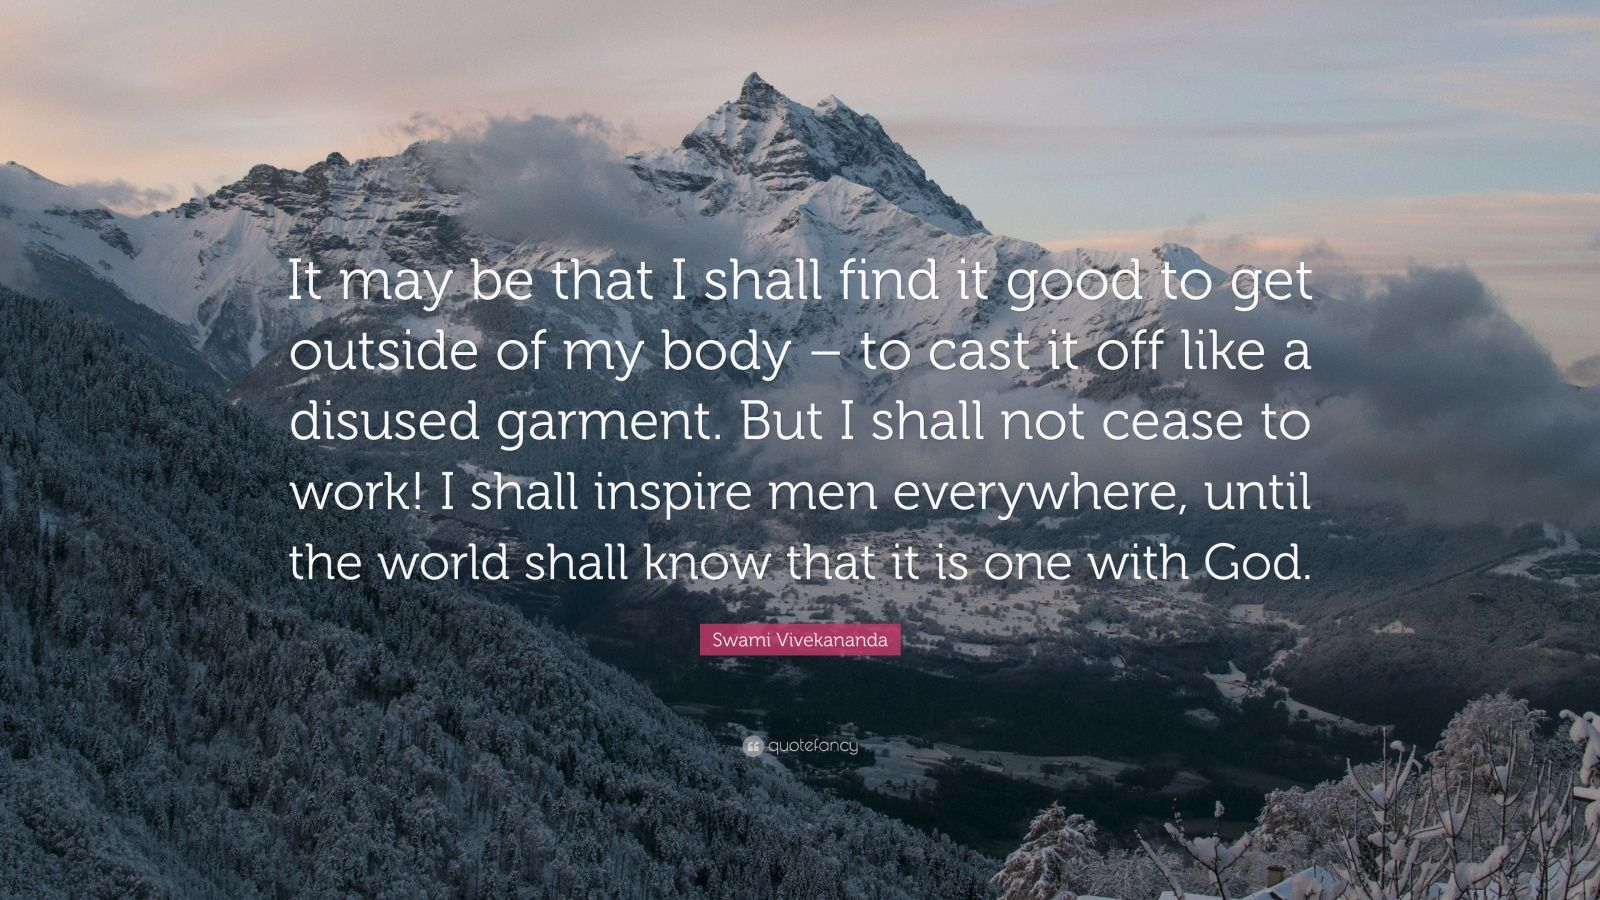 """Swami Vivekananda Quote: """"It may be that I shall find it good to get outside of my body – to cast it off like a disused garment. But I shall not cease to work! I shall inspire men everywhere, until the world shall know that it is one with God."""""""